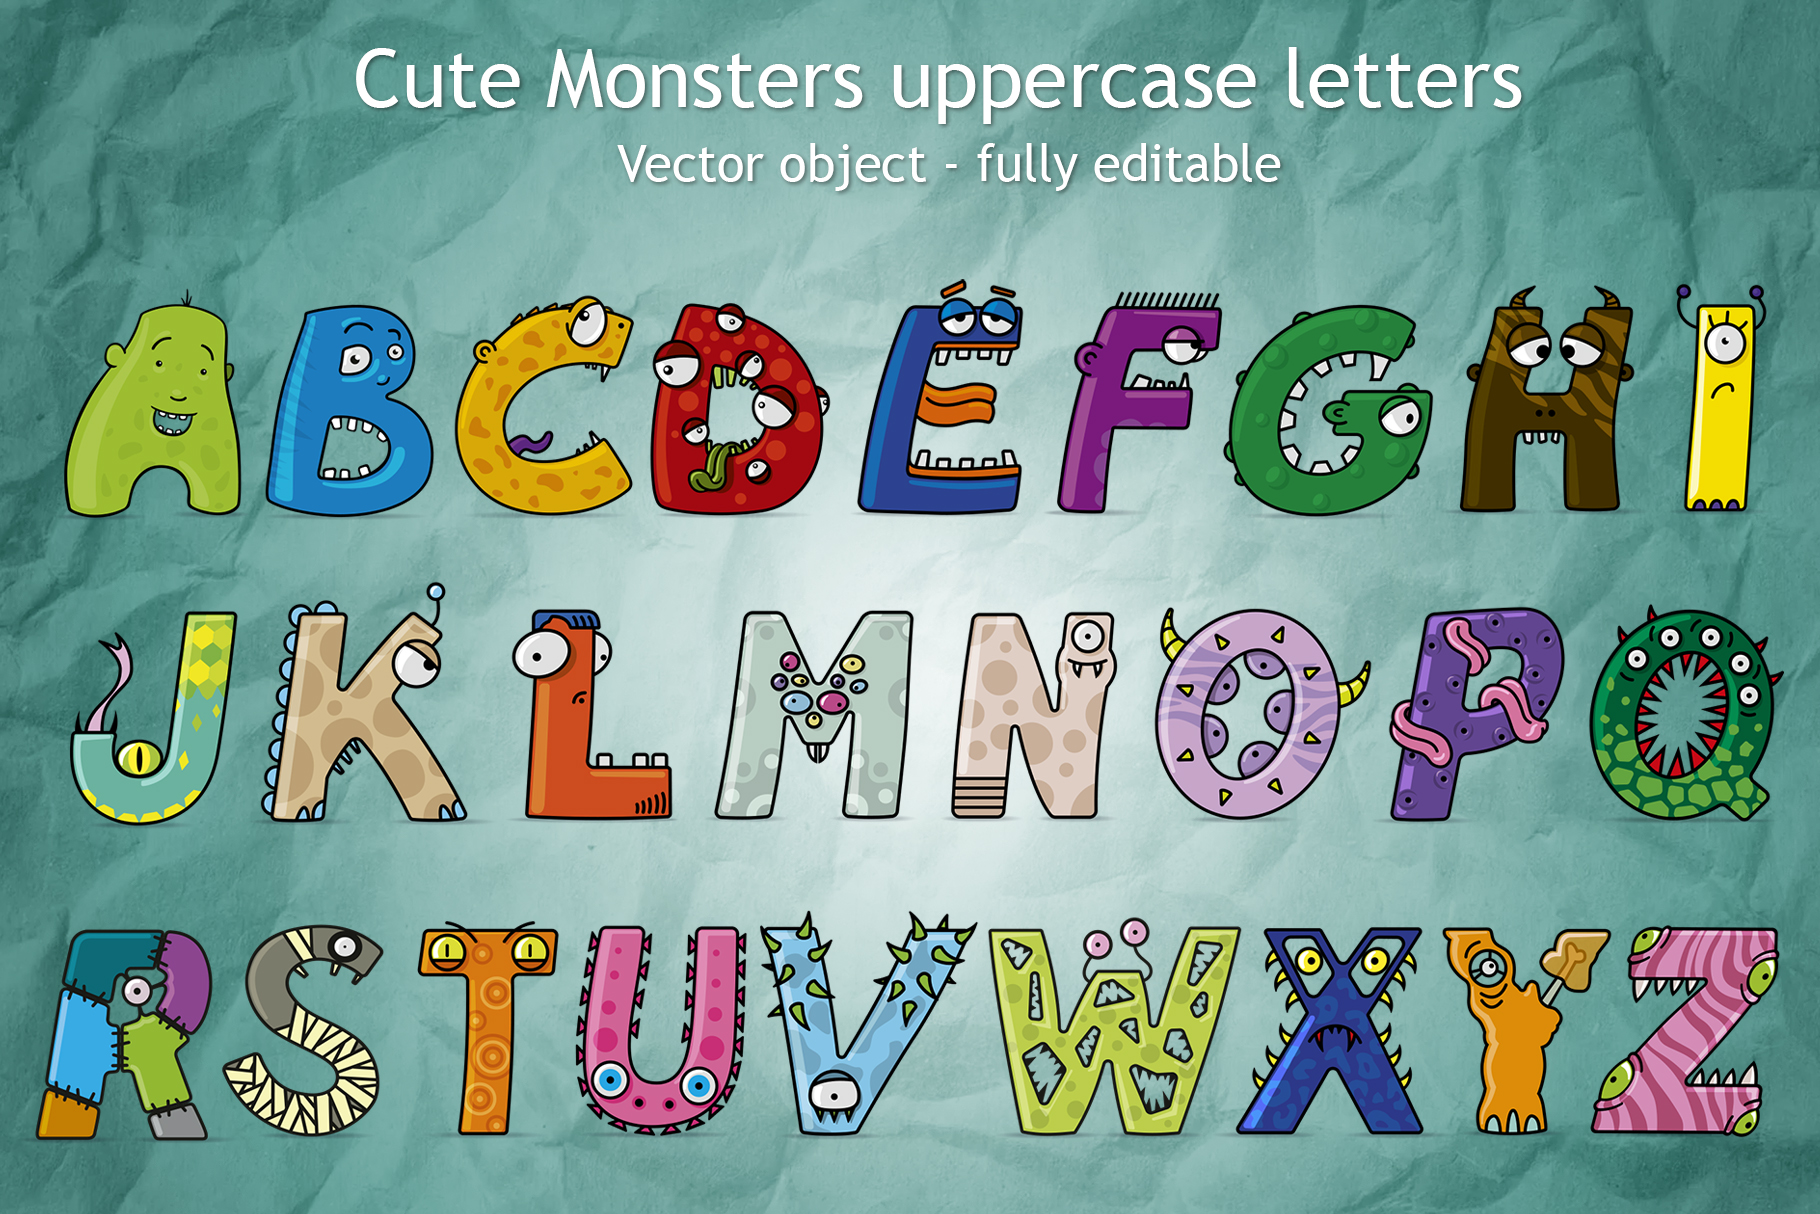 Download Free Cute Monster Uppercase Letters Graphic By Giordanoaita for Cricut Explore, Silhouette and other cutting machines.